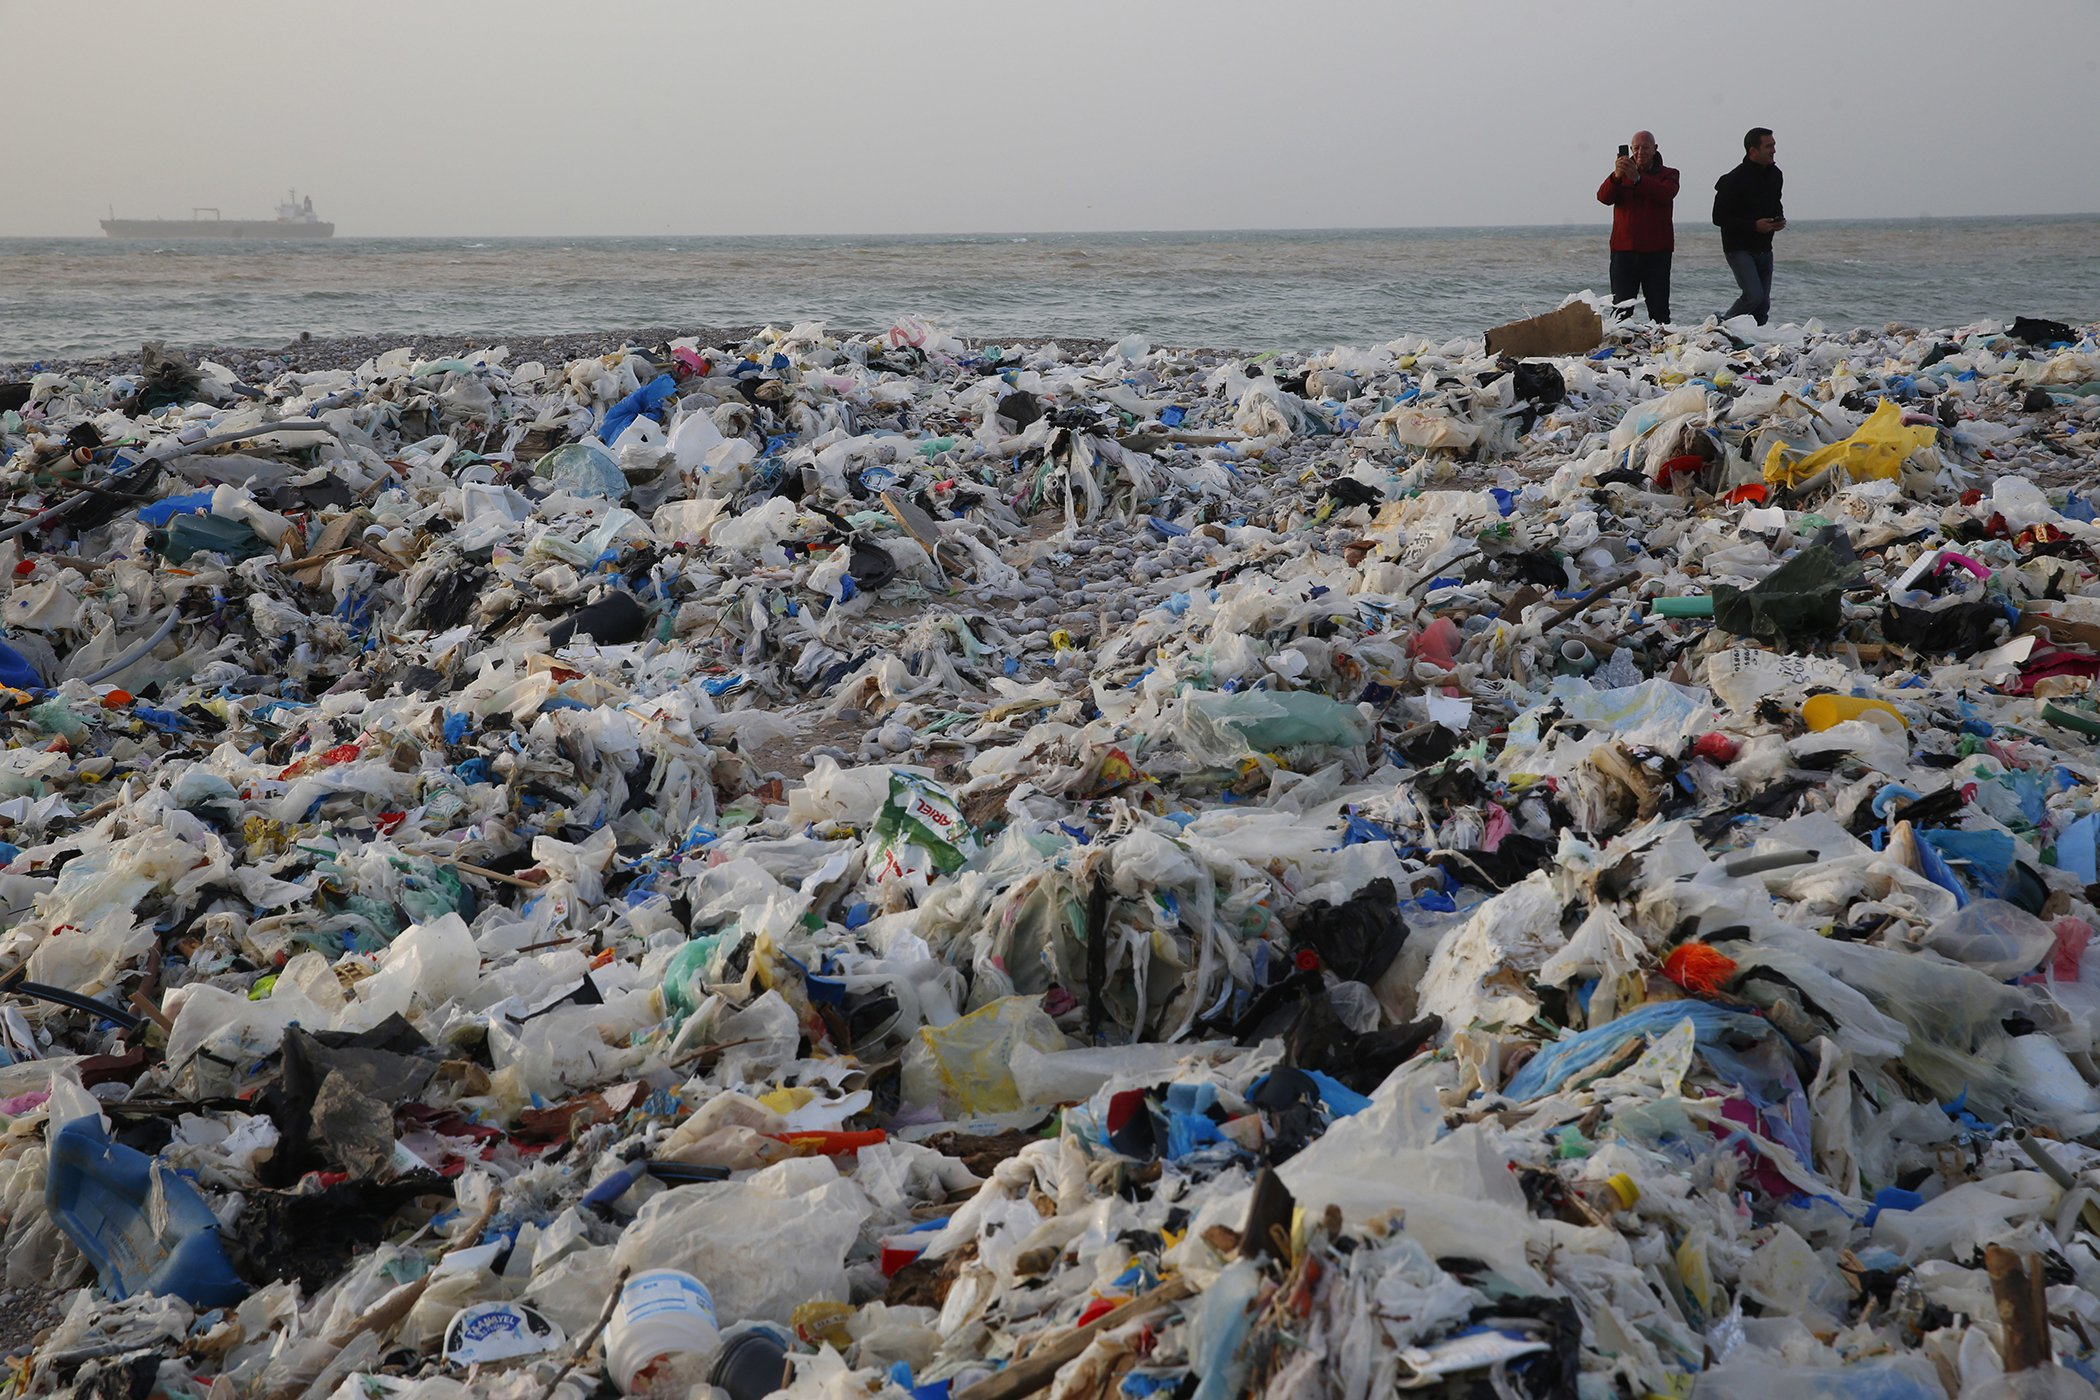 Lebanon-Waste-Trash-Beach-1.jpg